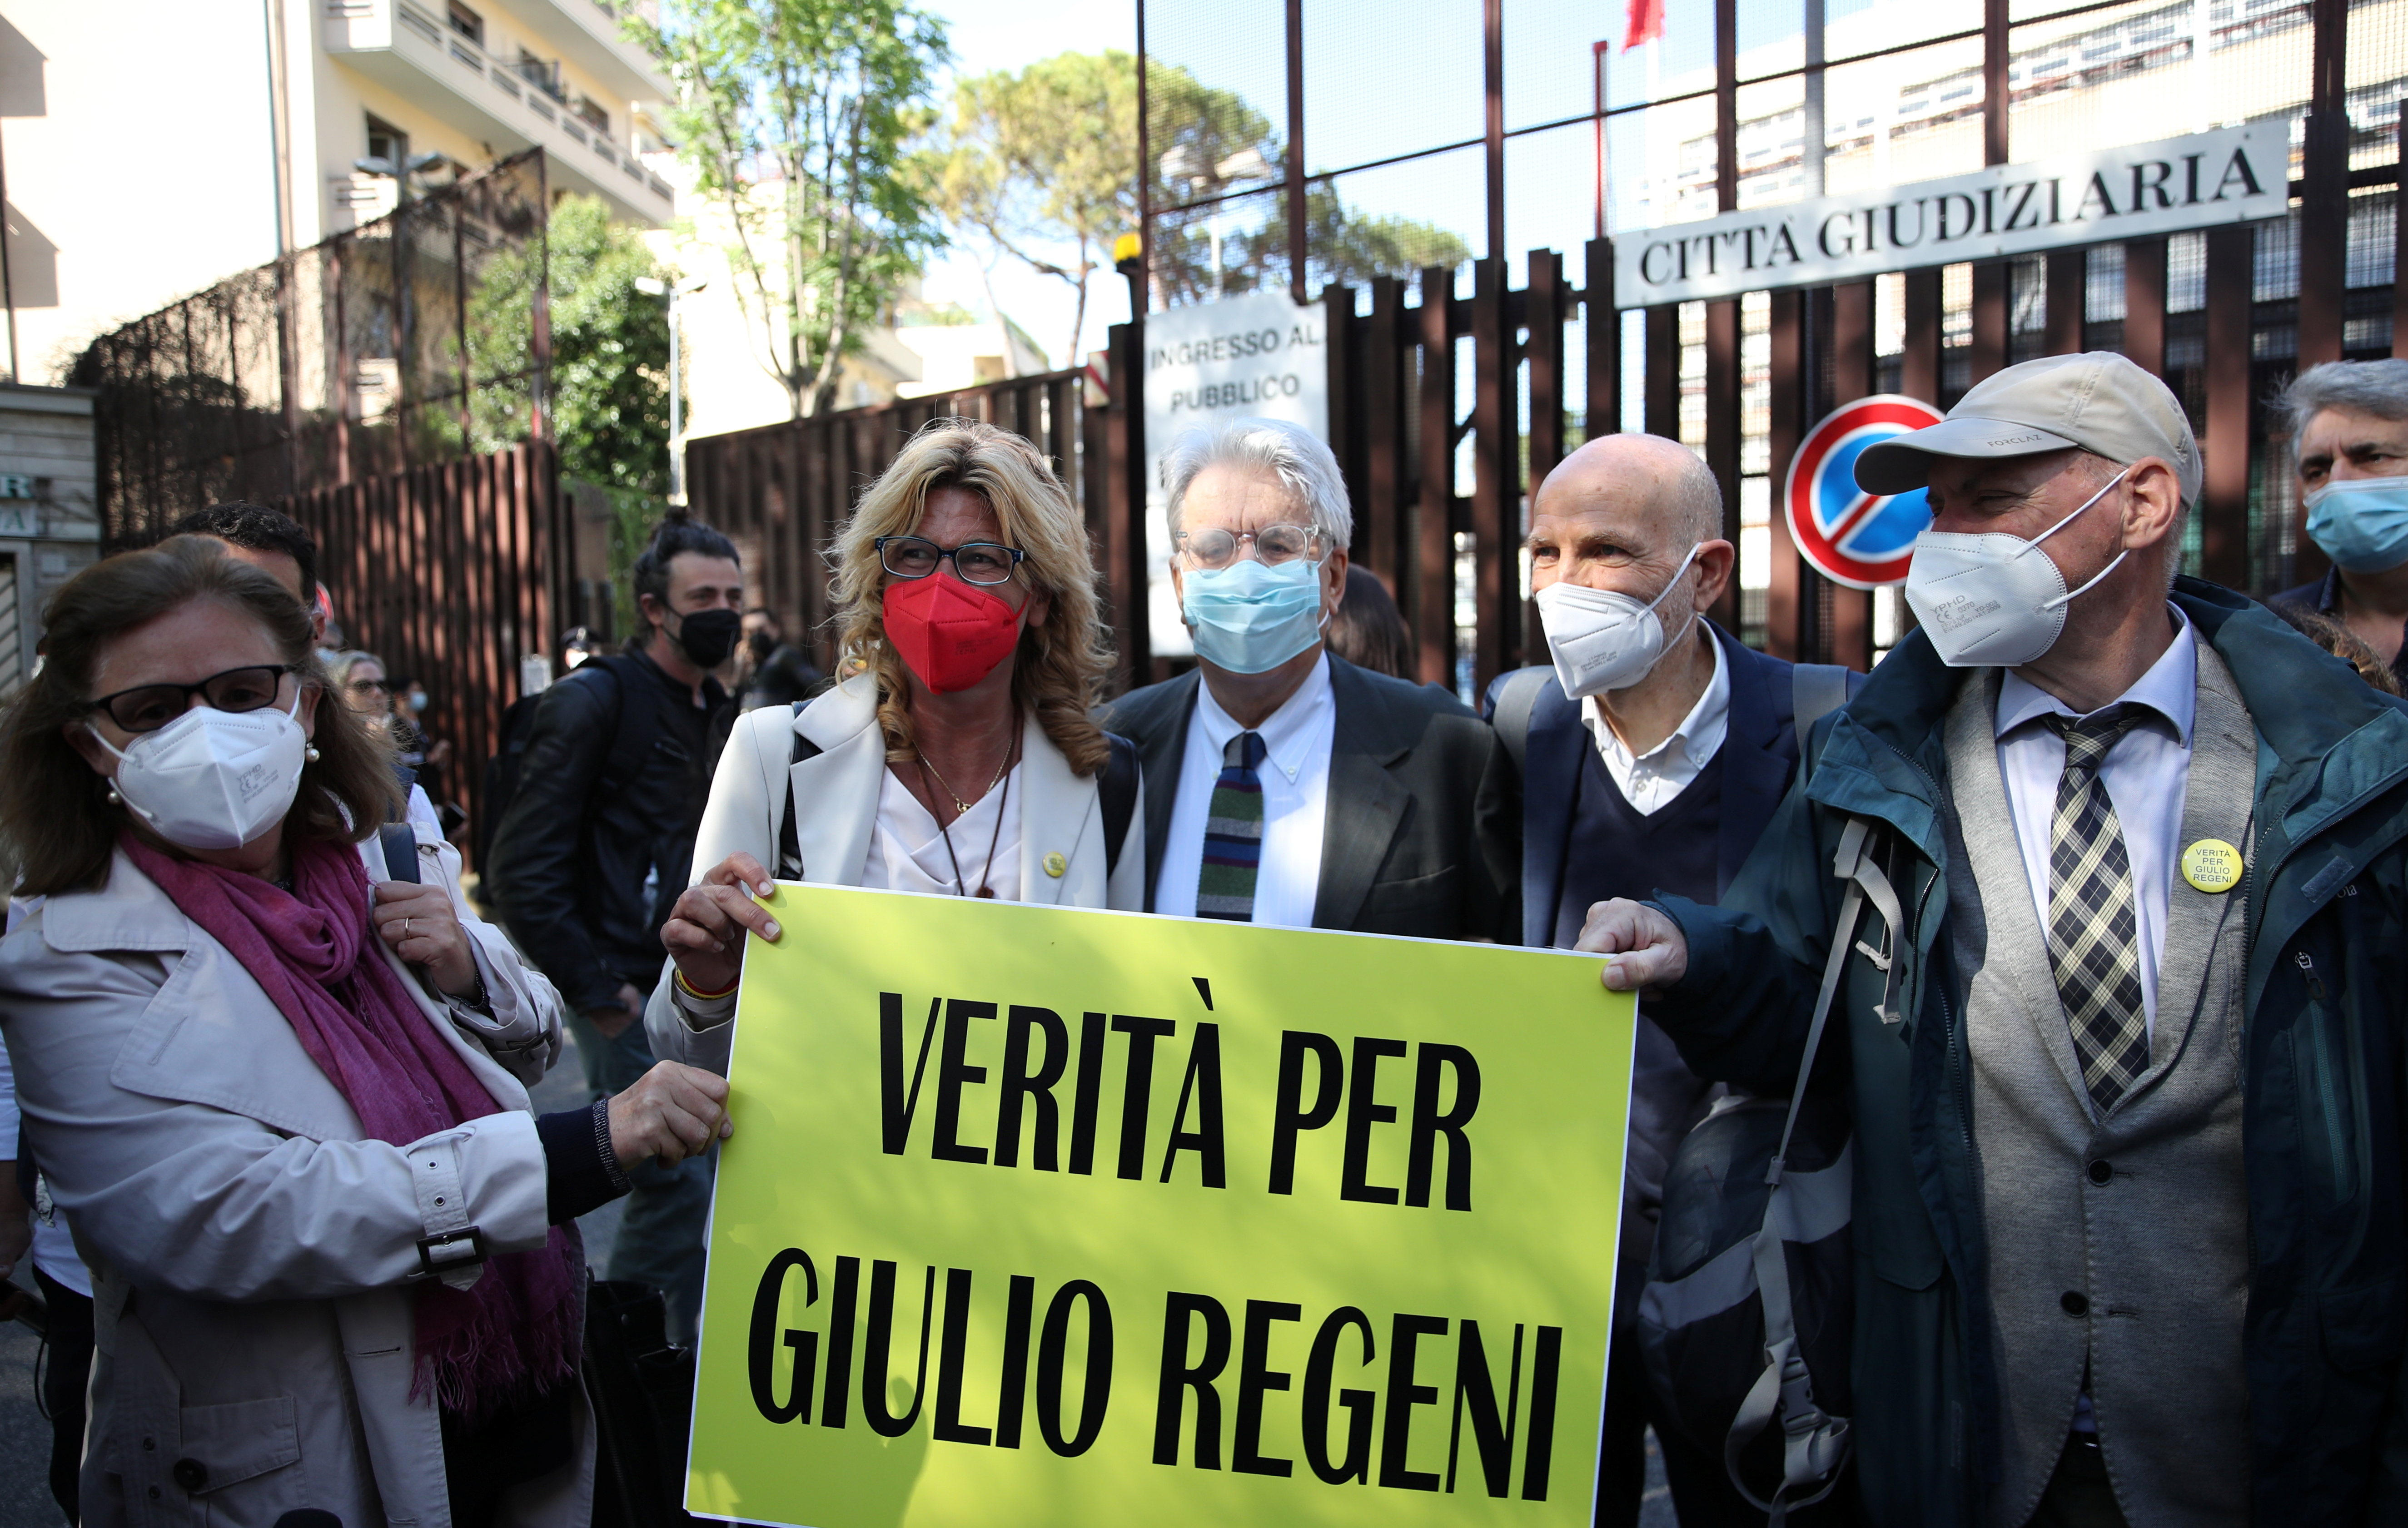 Paola and Claudio Regeni stand outside the courthouse with their lawyer Alessandra Ballerini before the pre-trial hearing to decide if four high-ranking Egyptian security officers should go on trial for the 2016 Cairo abduction, torture and killing of their son Giulio Regeni, a student, in Rome, Italy, May 25, 2021. Sign reads,